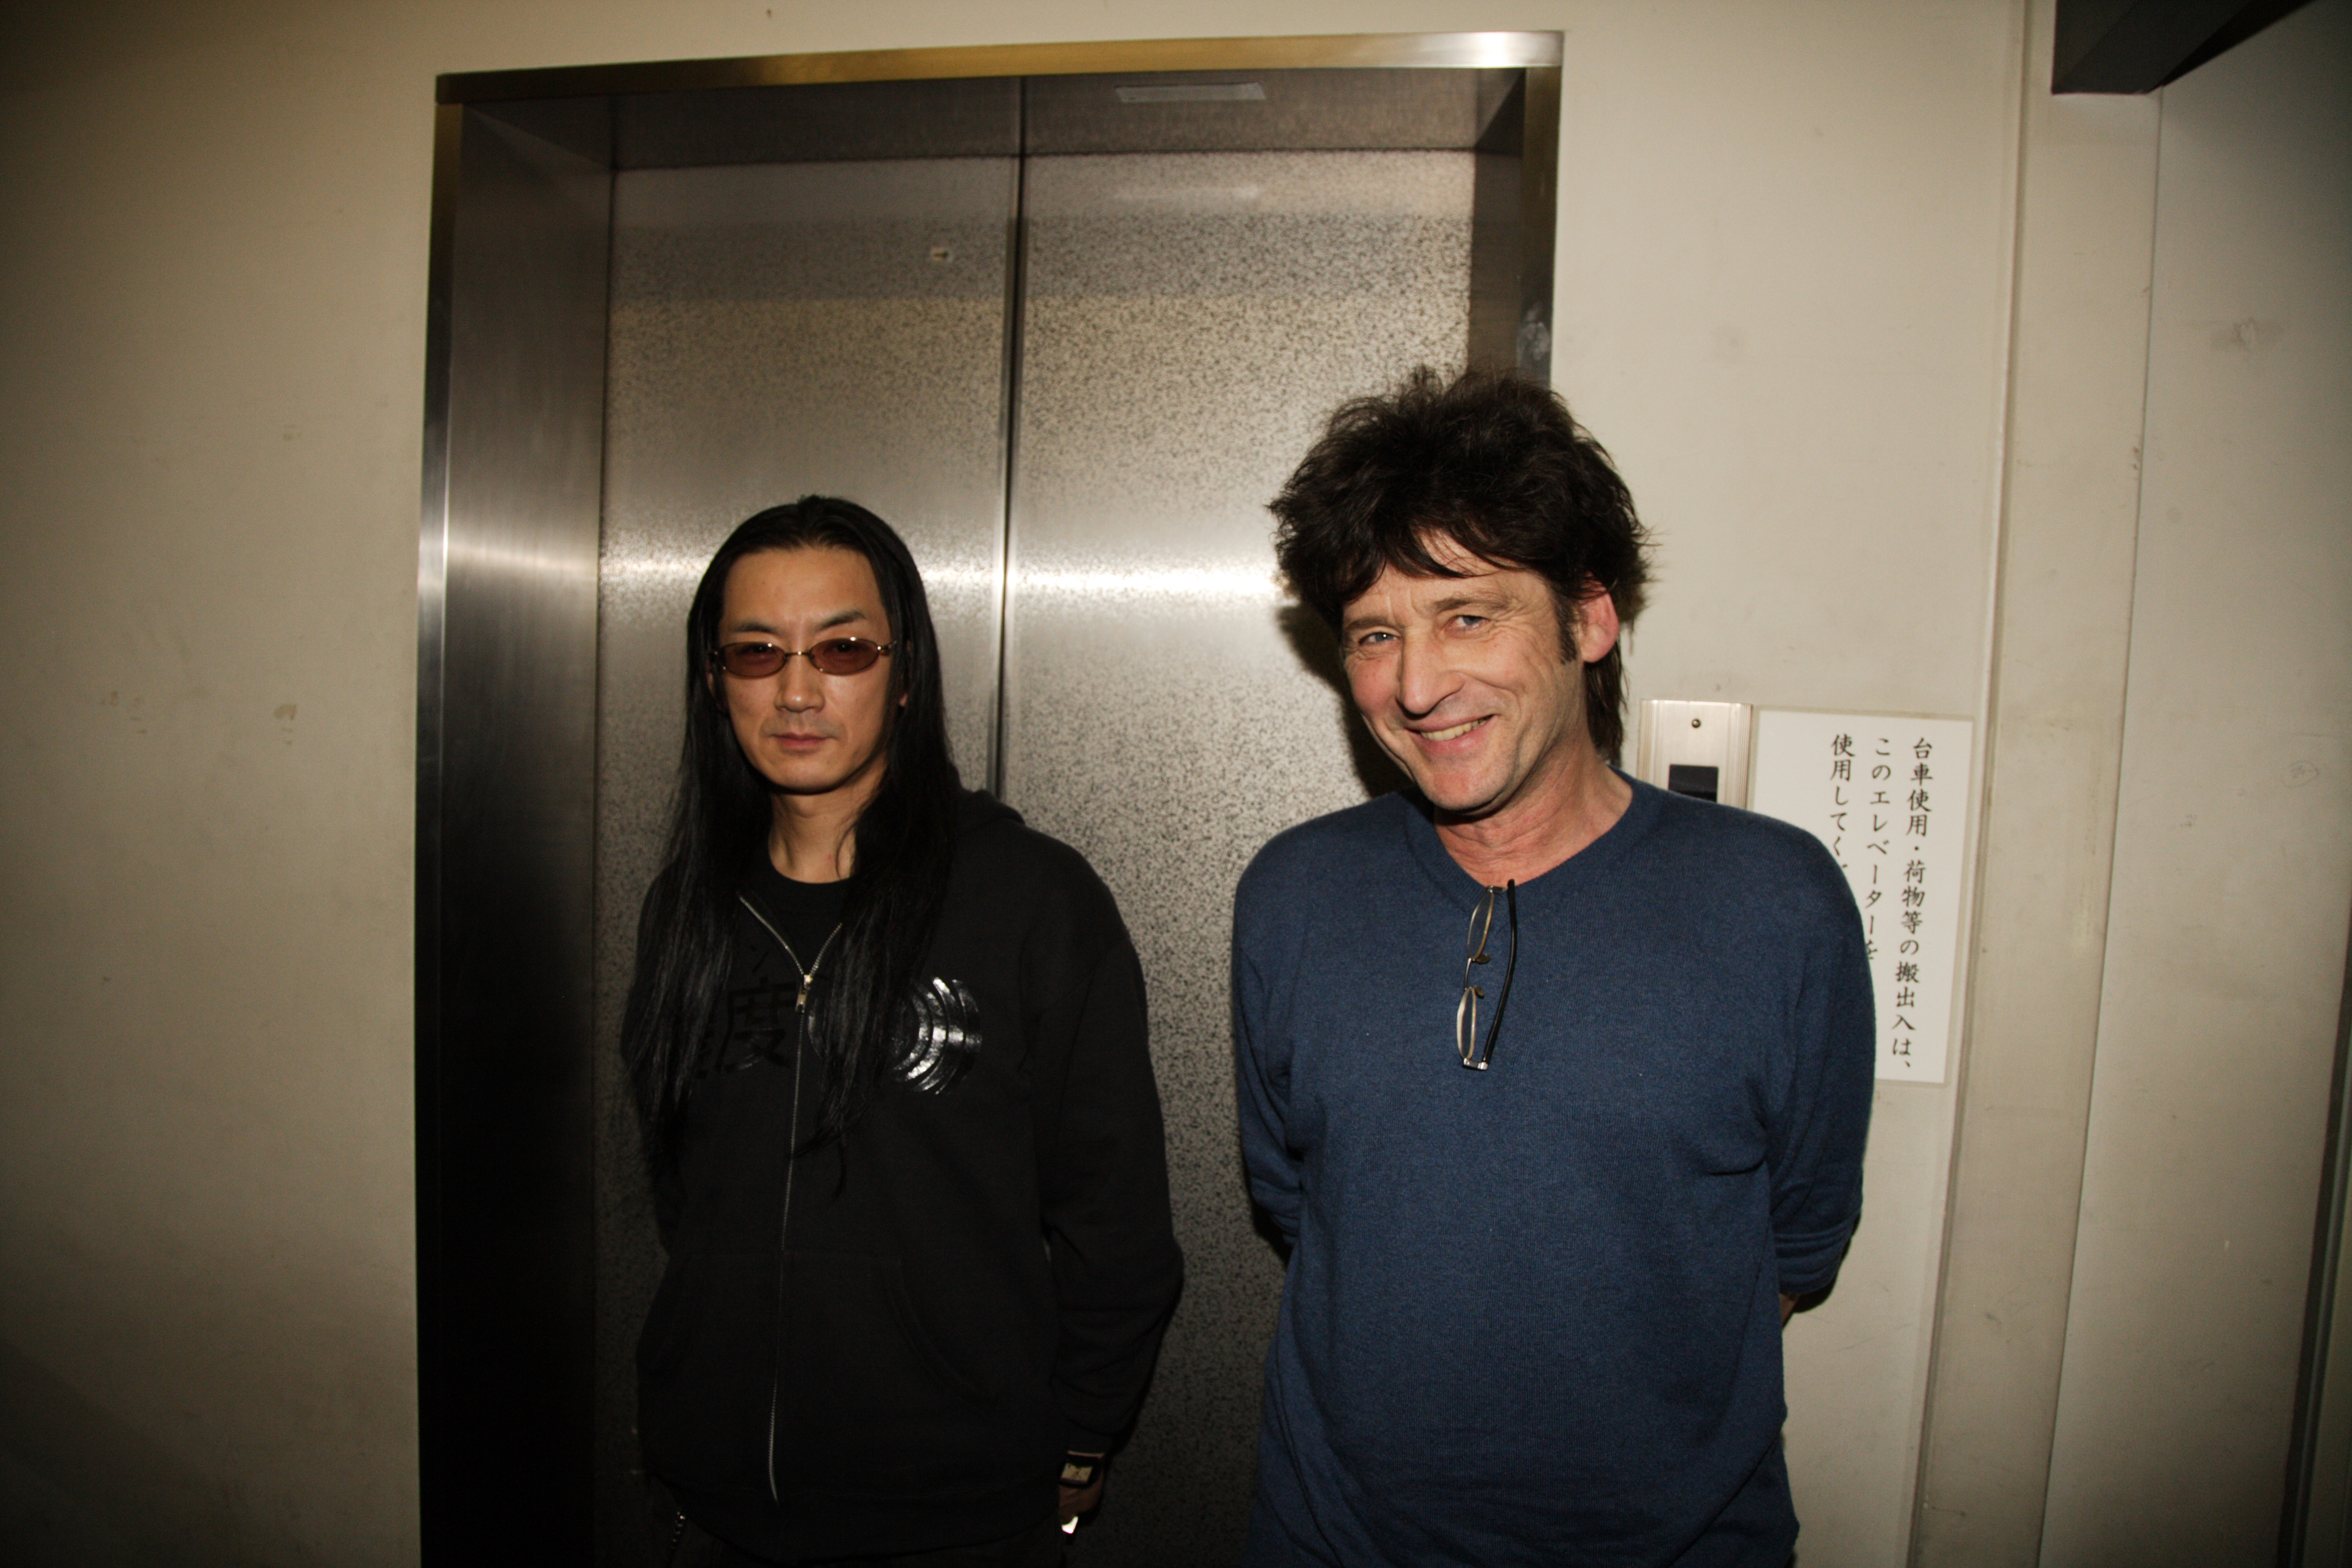 Richard Pinhas and Merzbow - Paris 2008